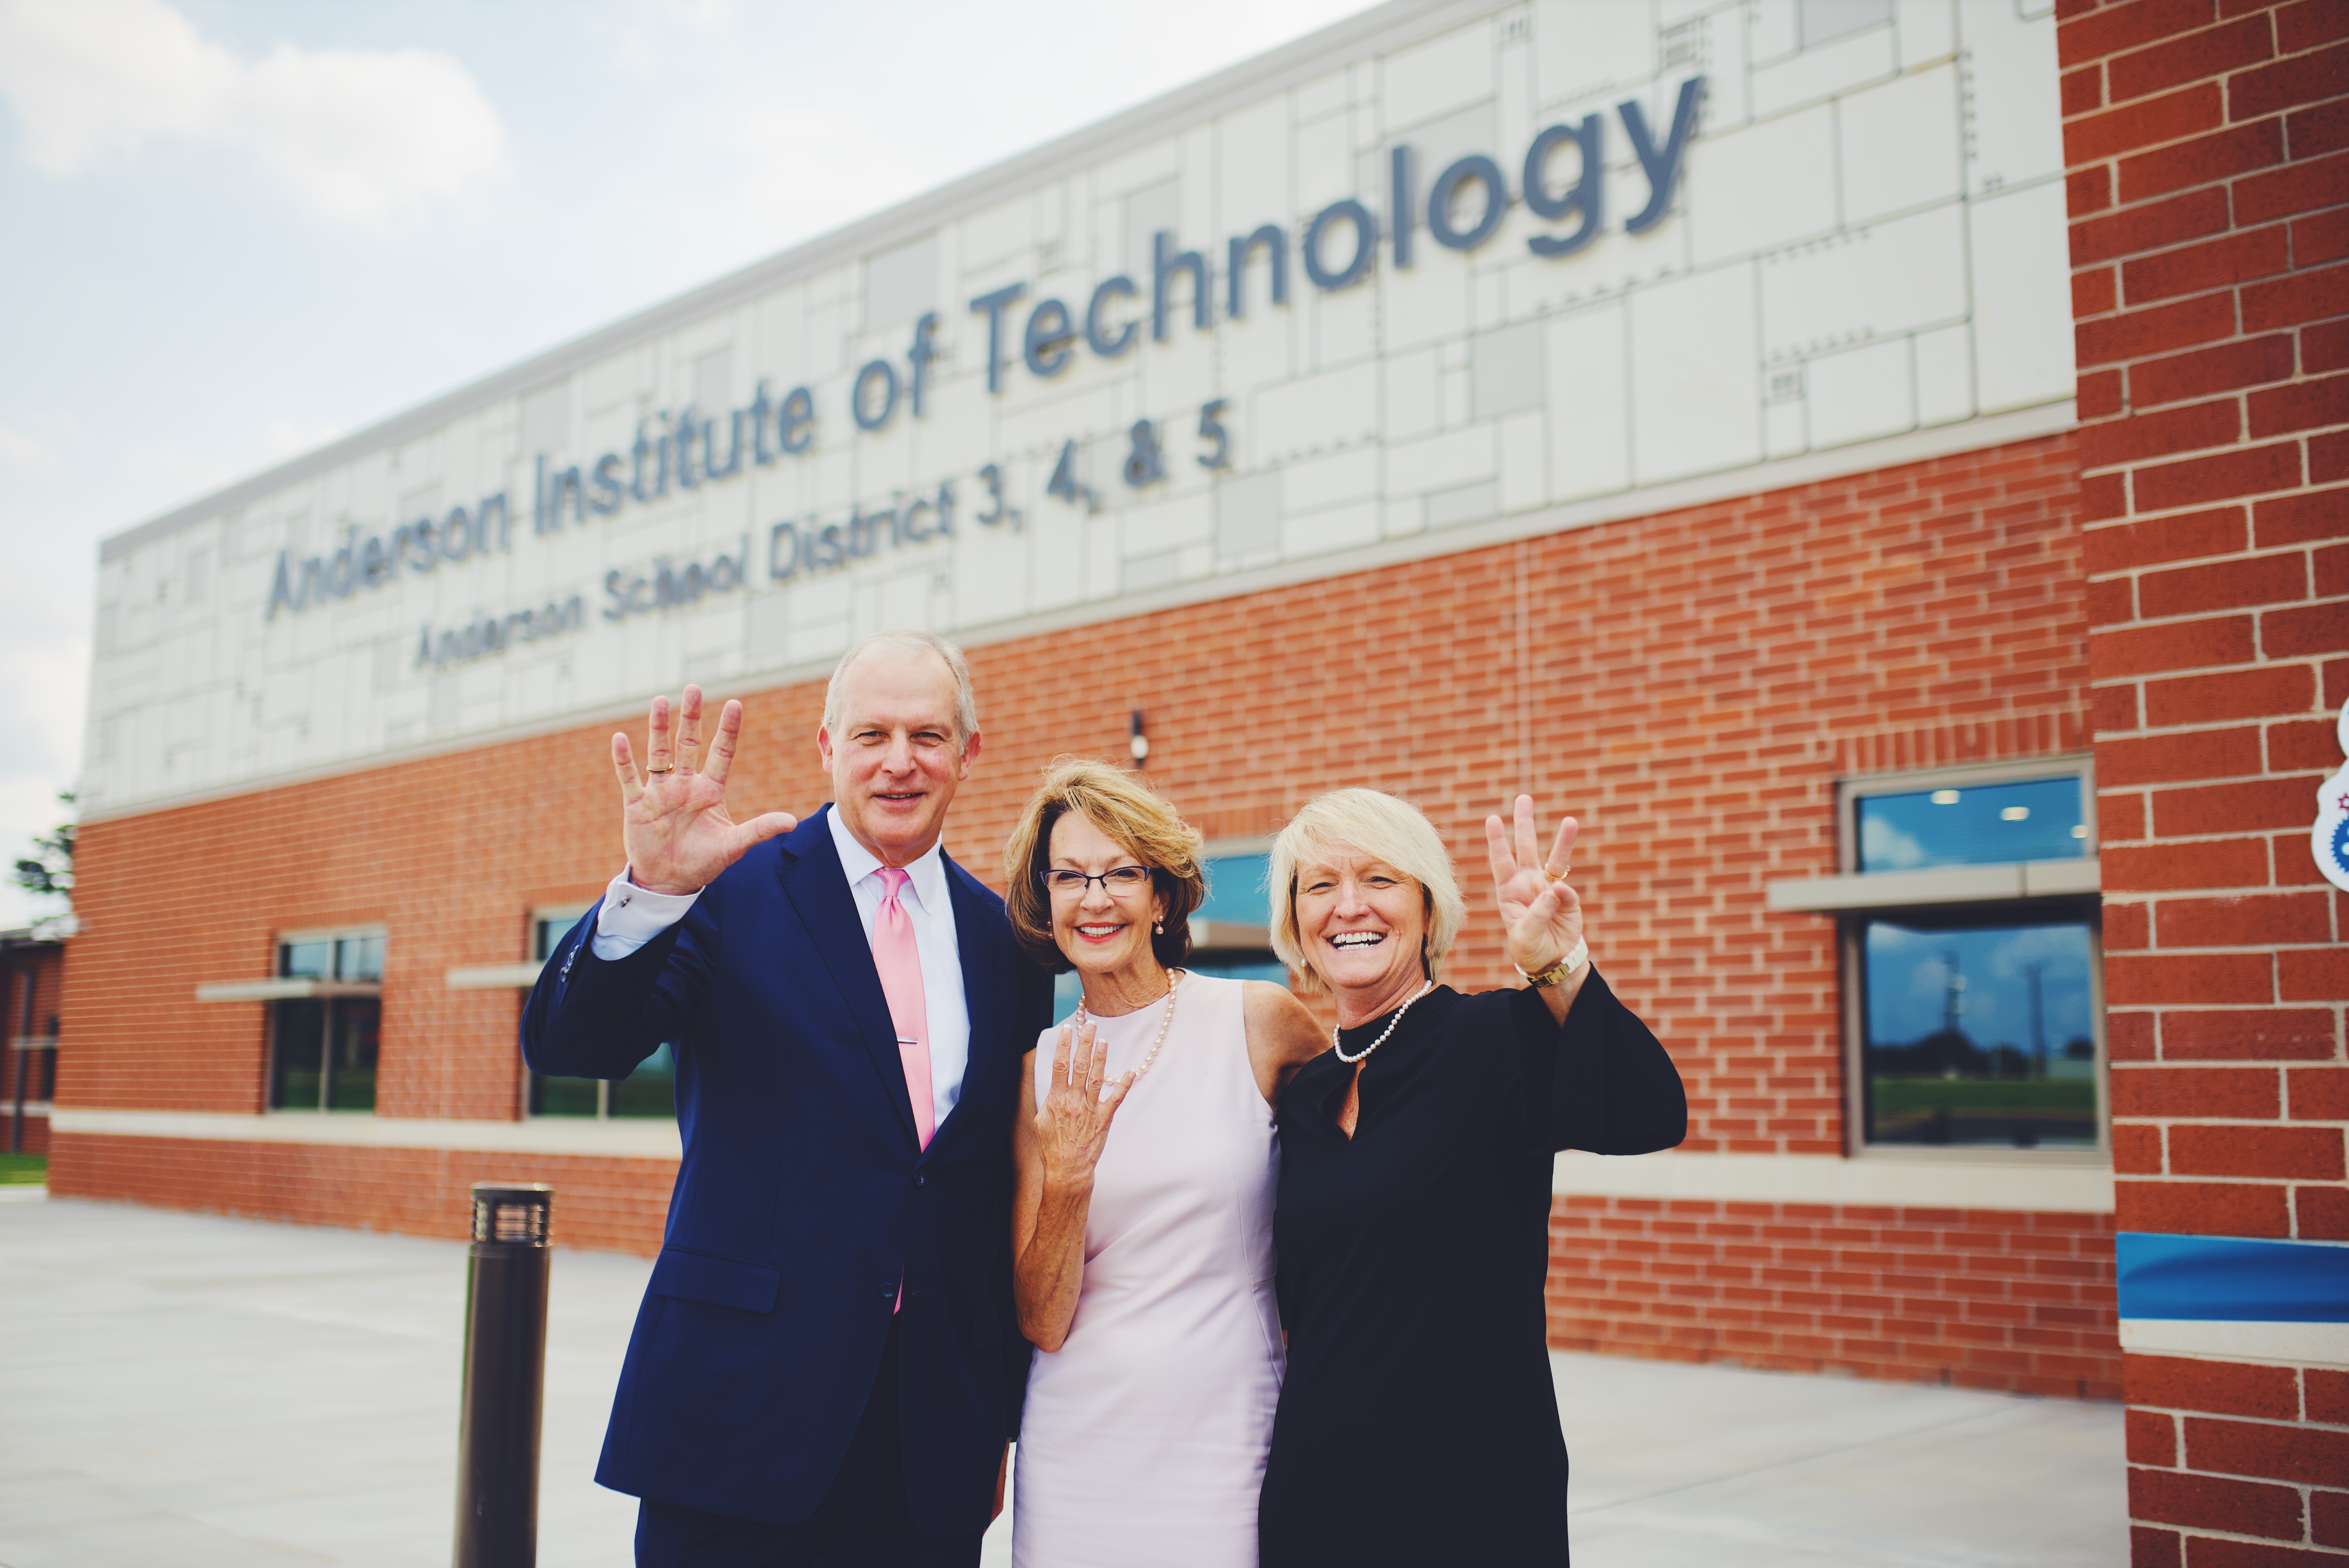 Superintendents of Anderson School Districts 3,4, & 5 Cut the Ribbon on the New Anderson Institute of Technology